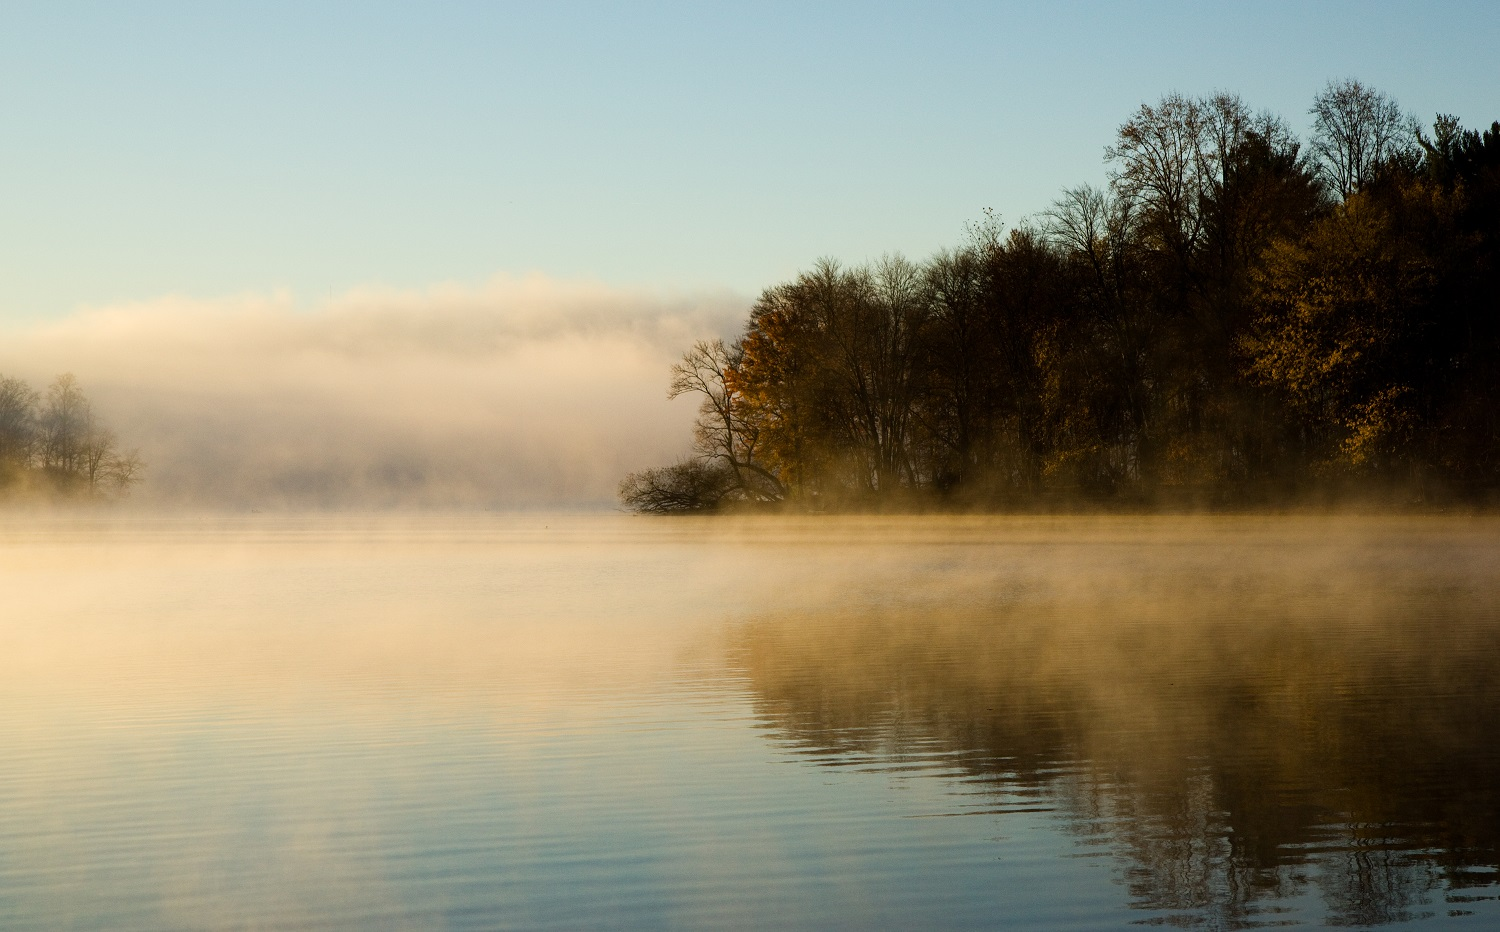 imabe of loch raven reservoir at dawn-Mike from twentyfourseven-flickr